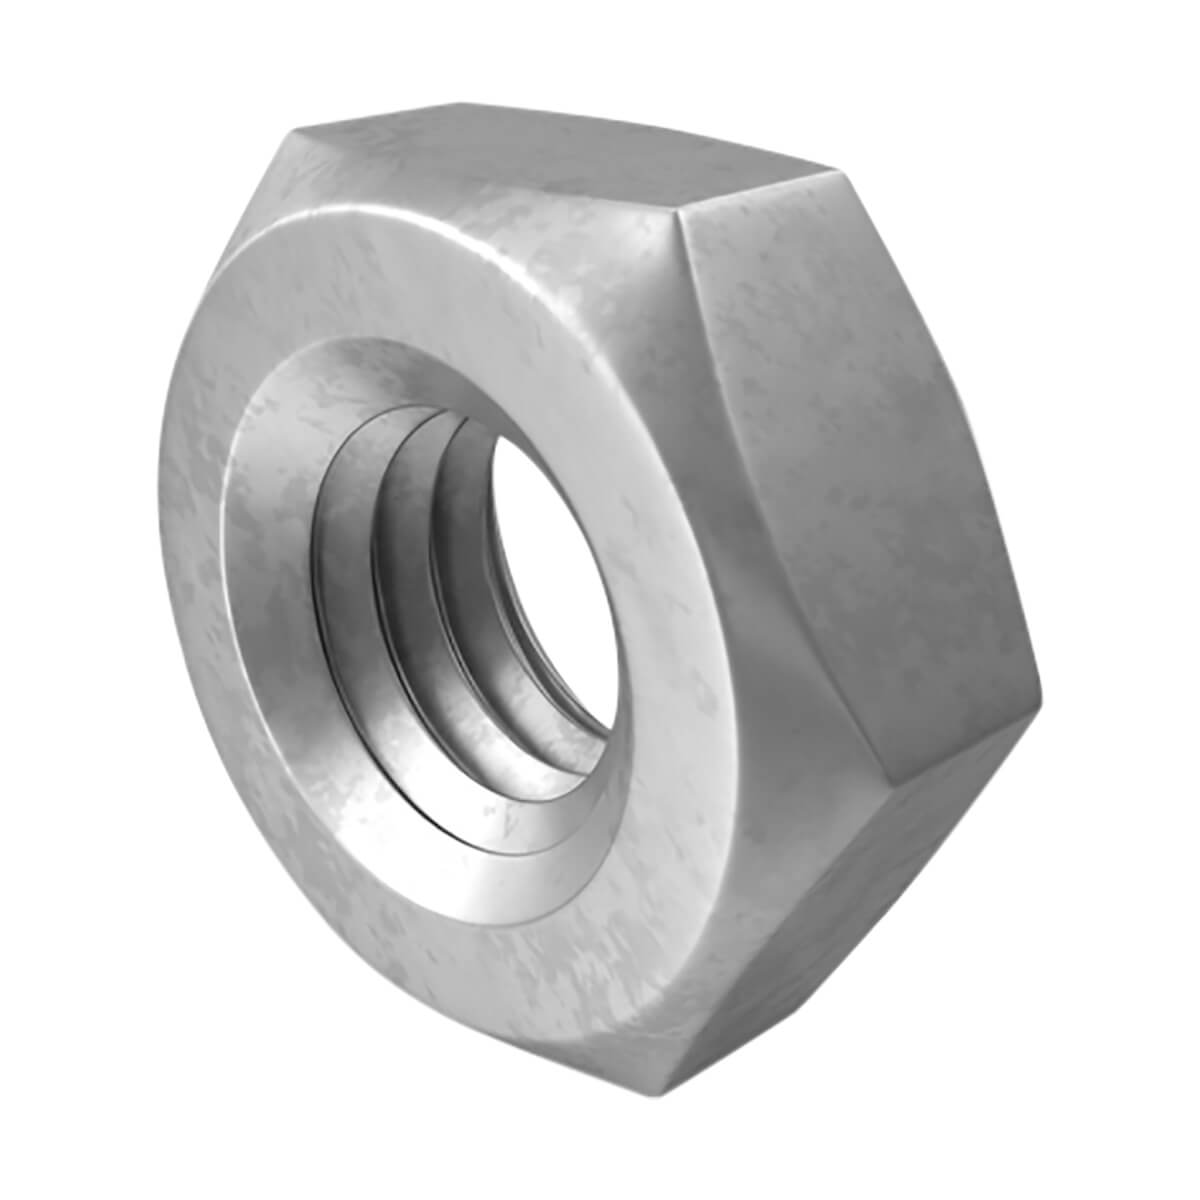 Hexagonal Nut - Stainless Steel - M10 X 1.50 Pitch - 5 - Pack